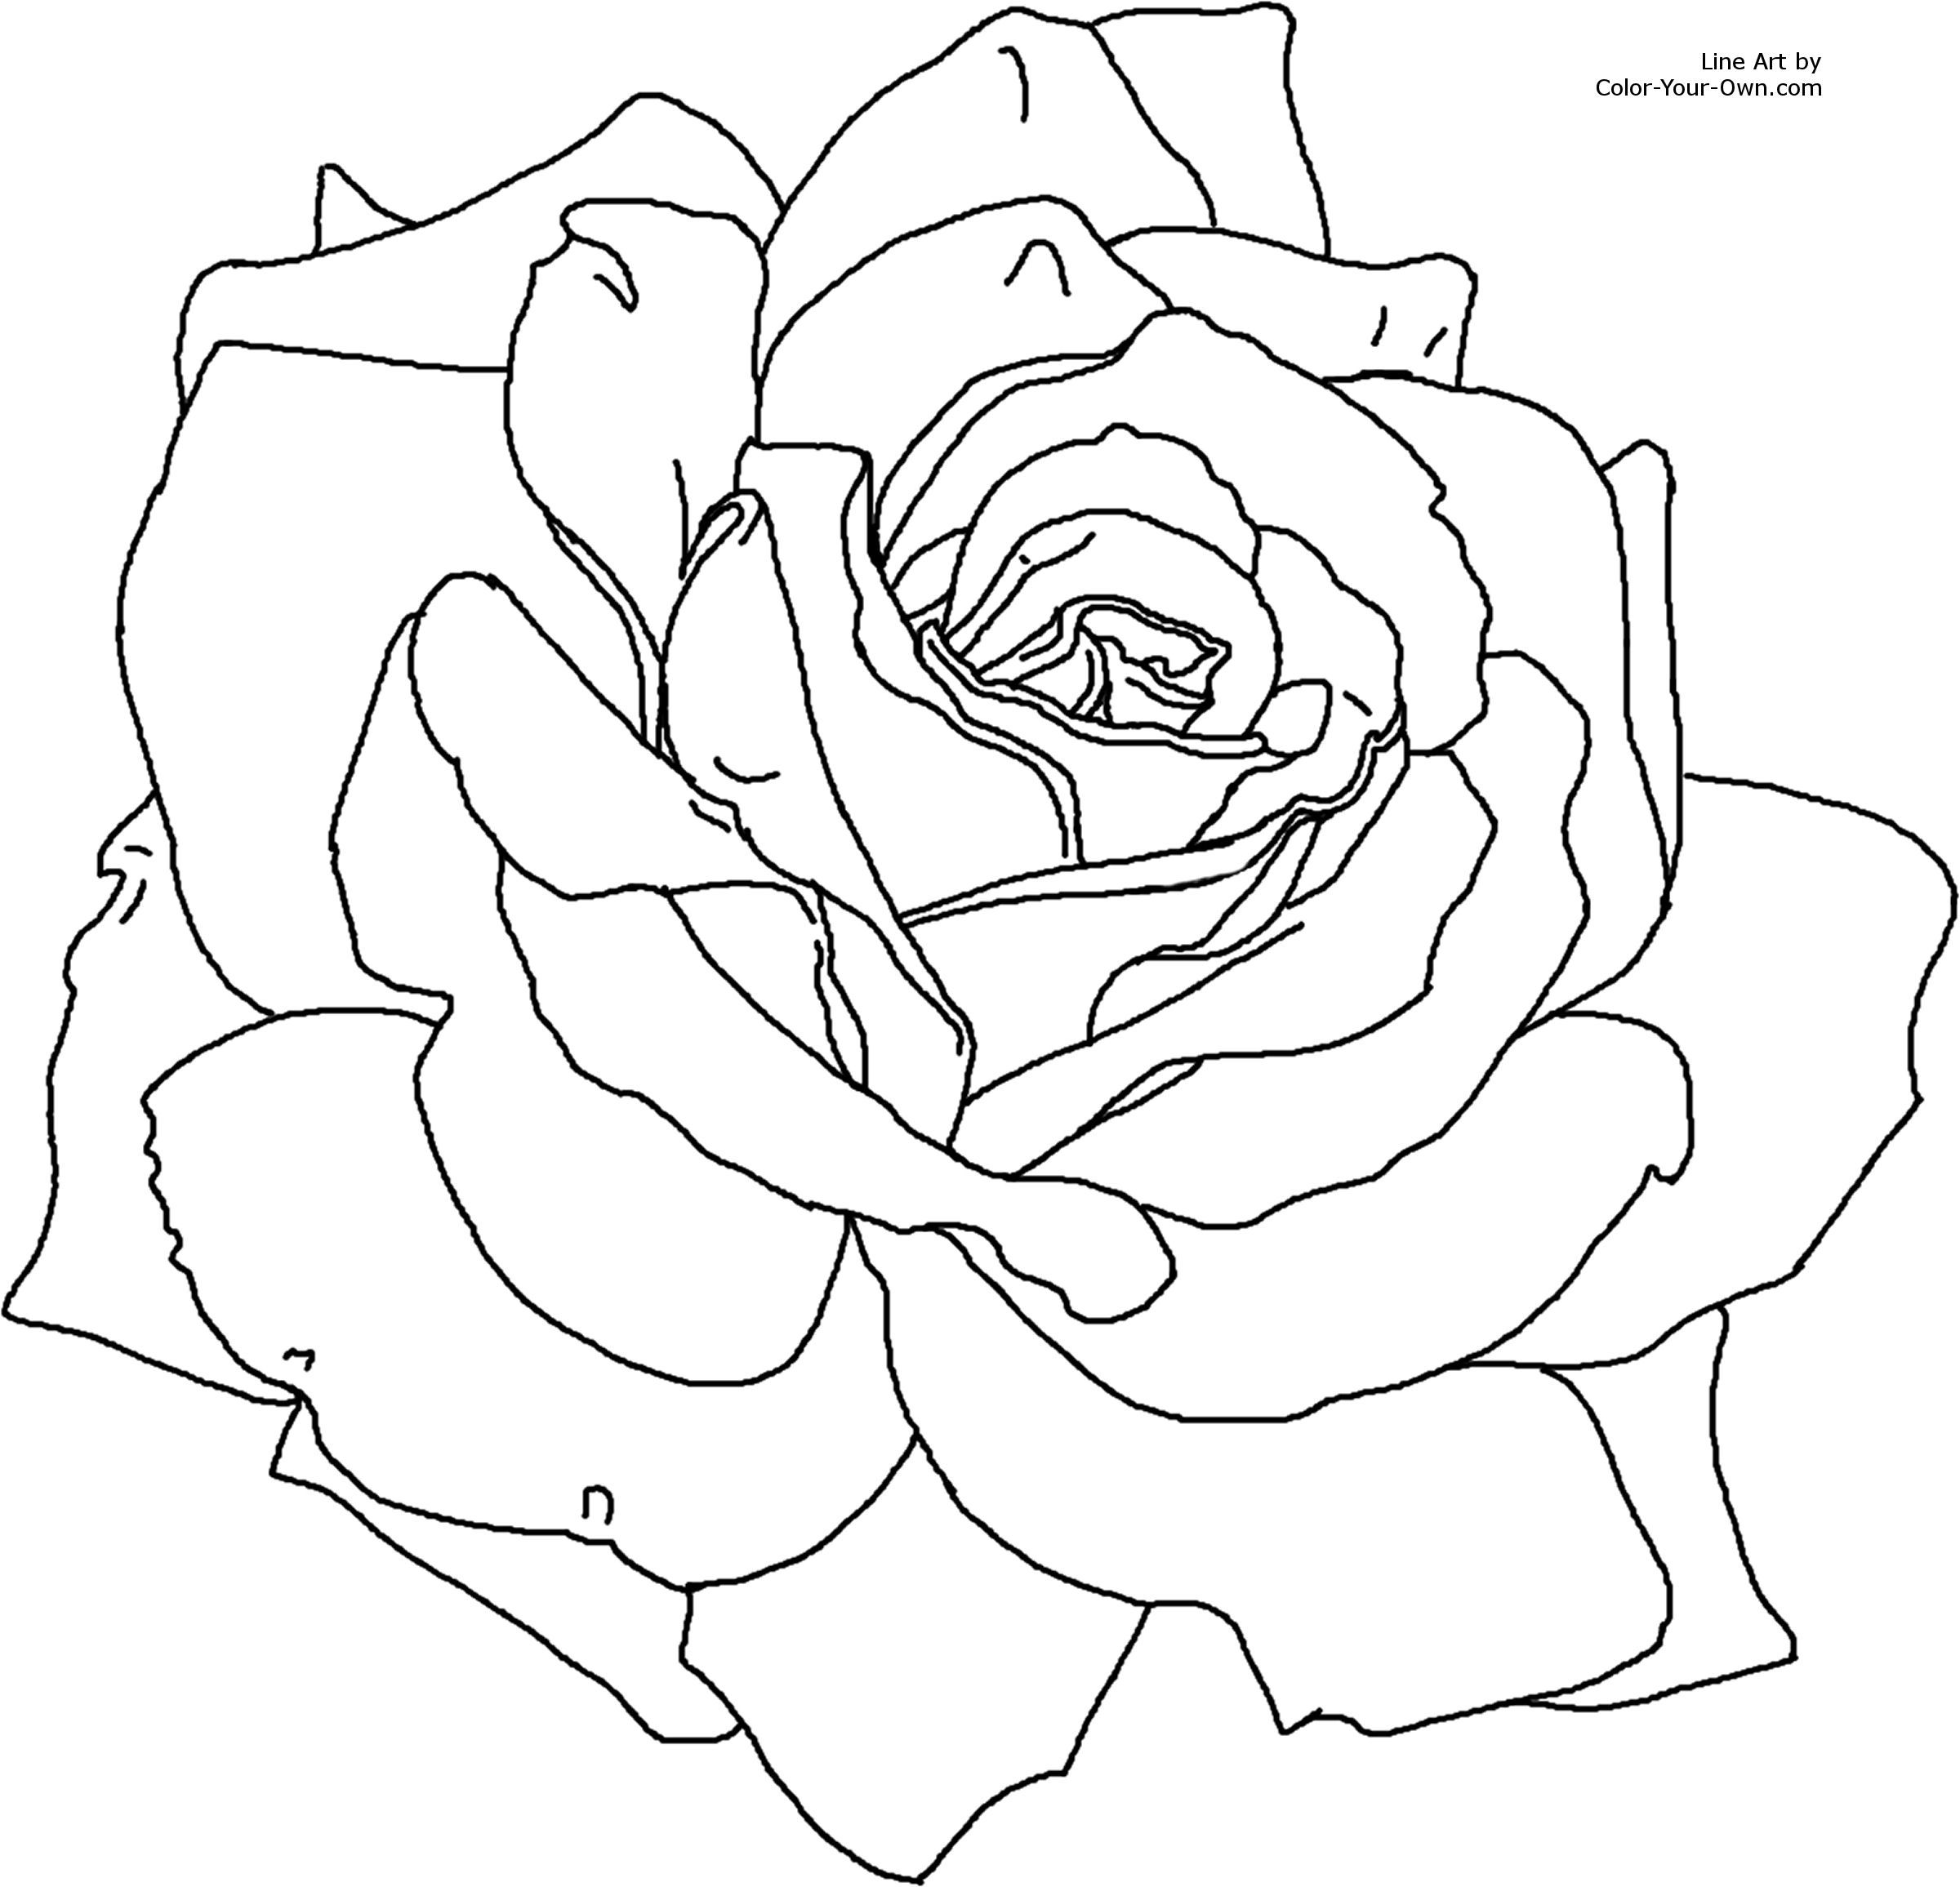 flower Page Printable Coloring Sheets  For the 85 x 11 printable